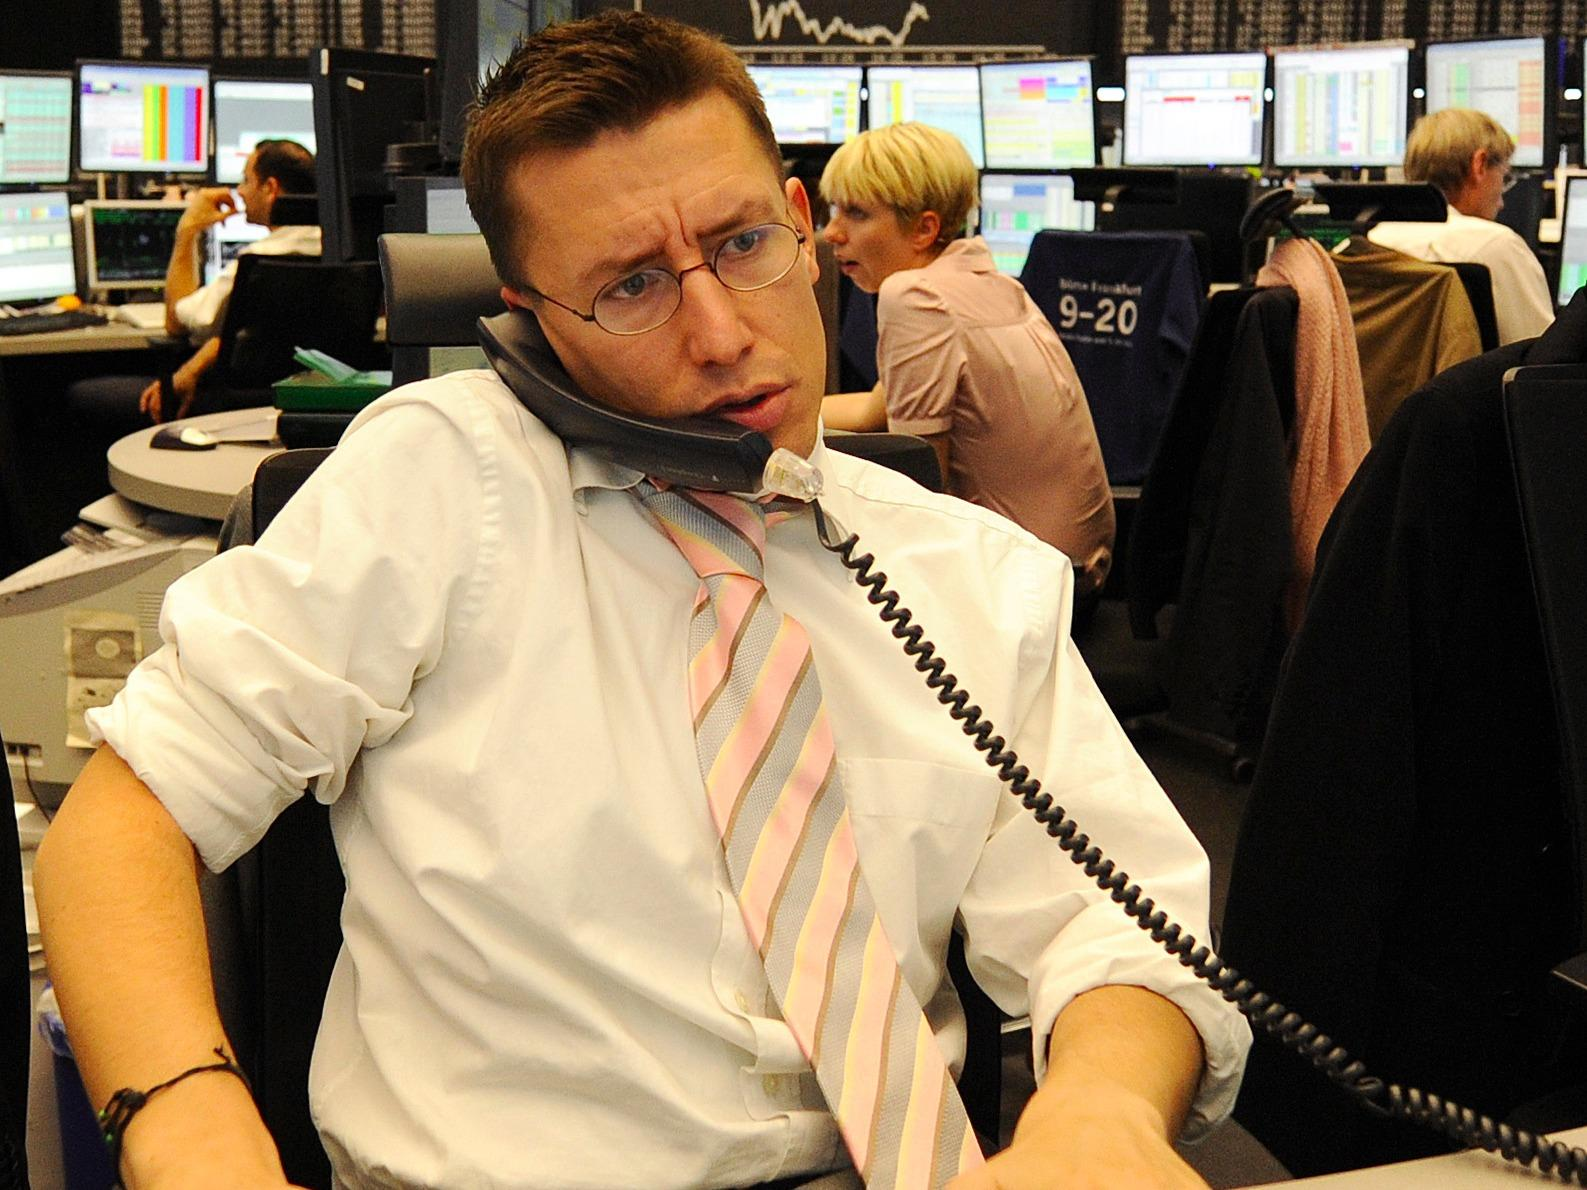 Here's a super quick guide to what traders are talking about before the jobs report